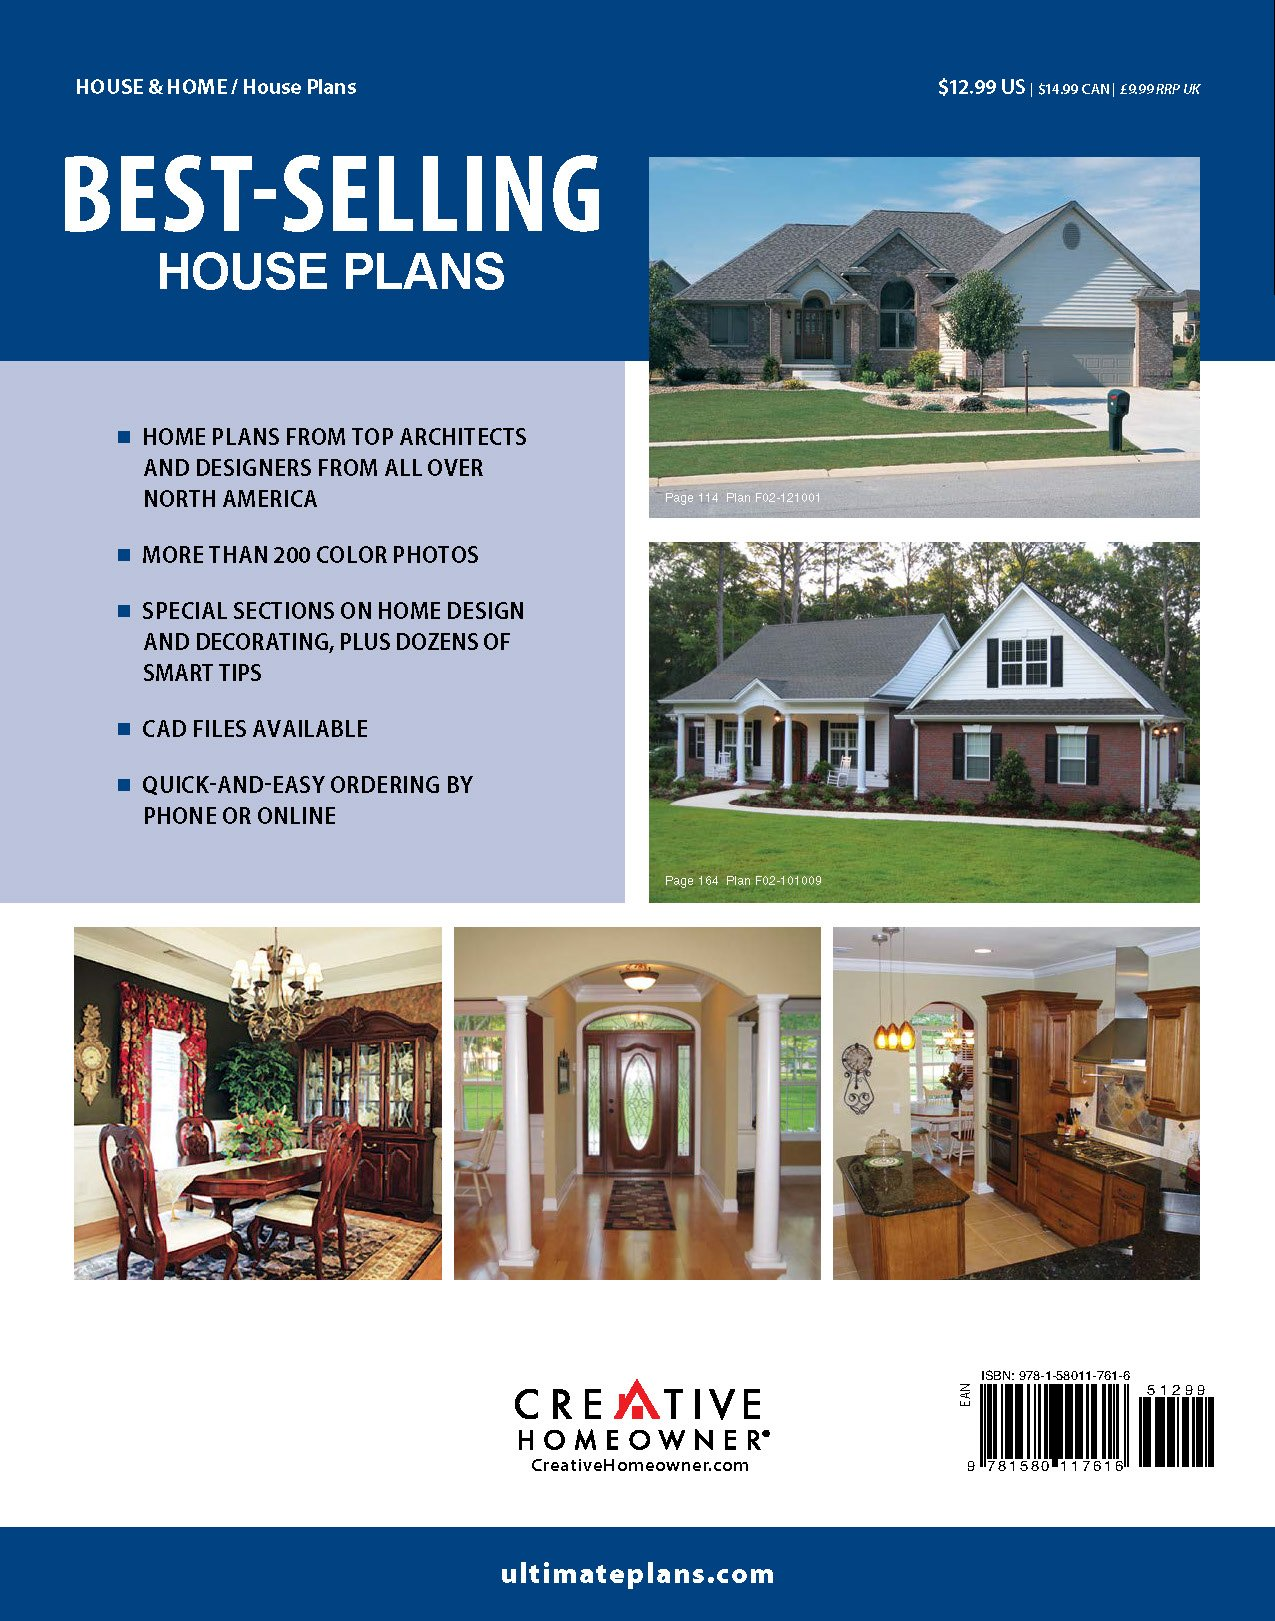 best selling house plans creative homeowner creative homeowner best selling house plans creative homeowner creative homeowner 9781580117616 amazon com books